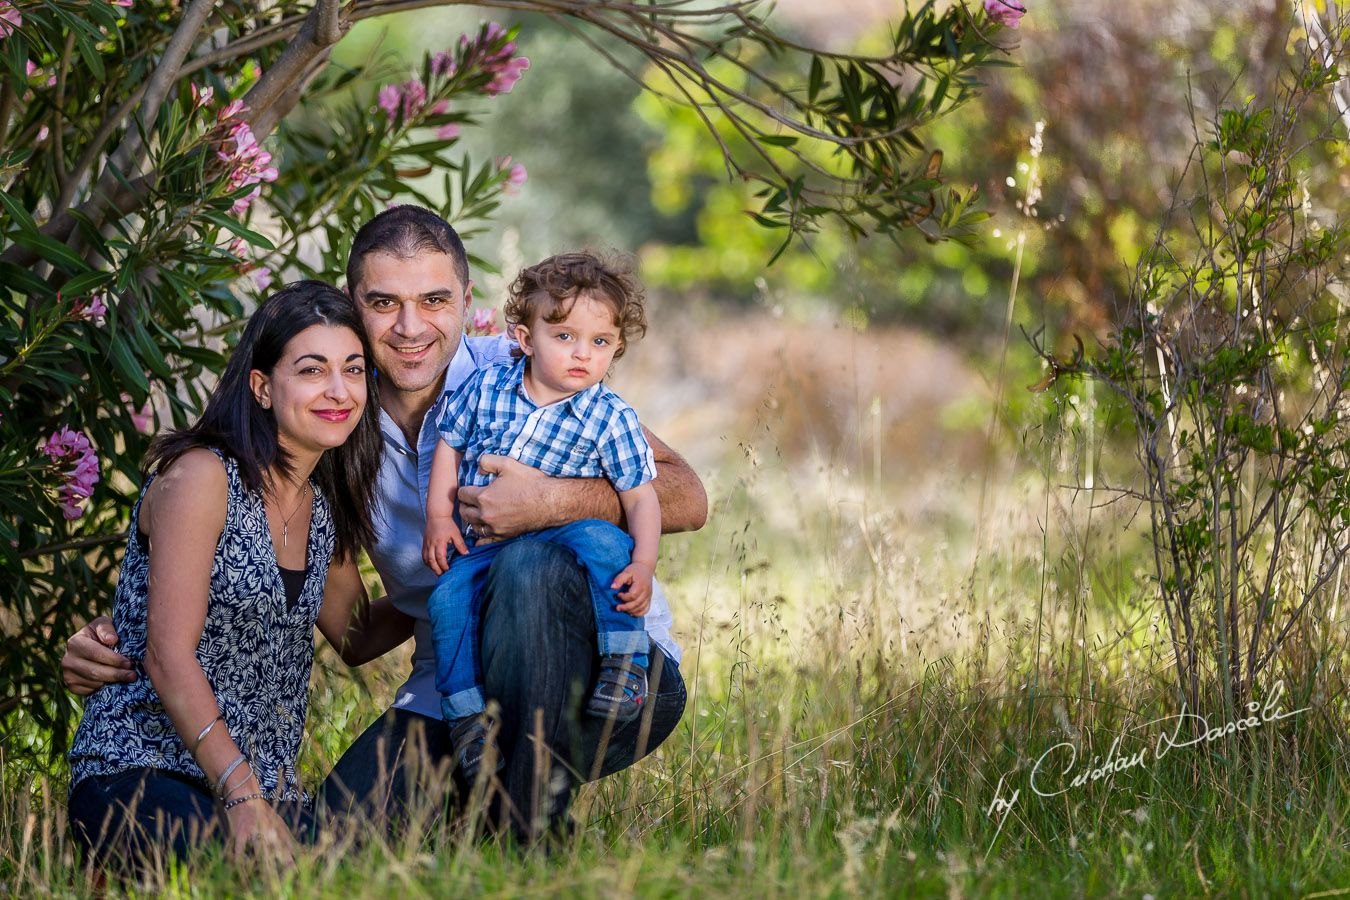 Maria, George & Harry - Family photo shoot near Curium Beach, Cyprus: Photographer: Cristian Dascalu